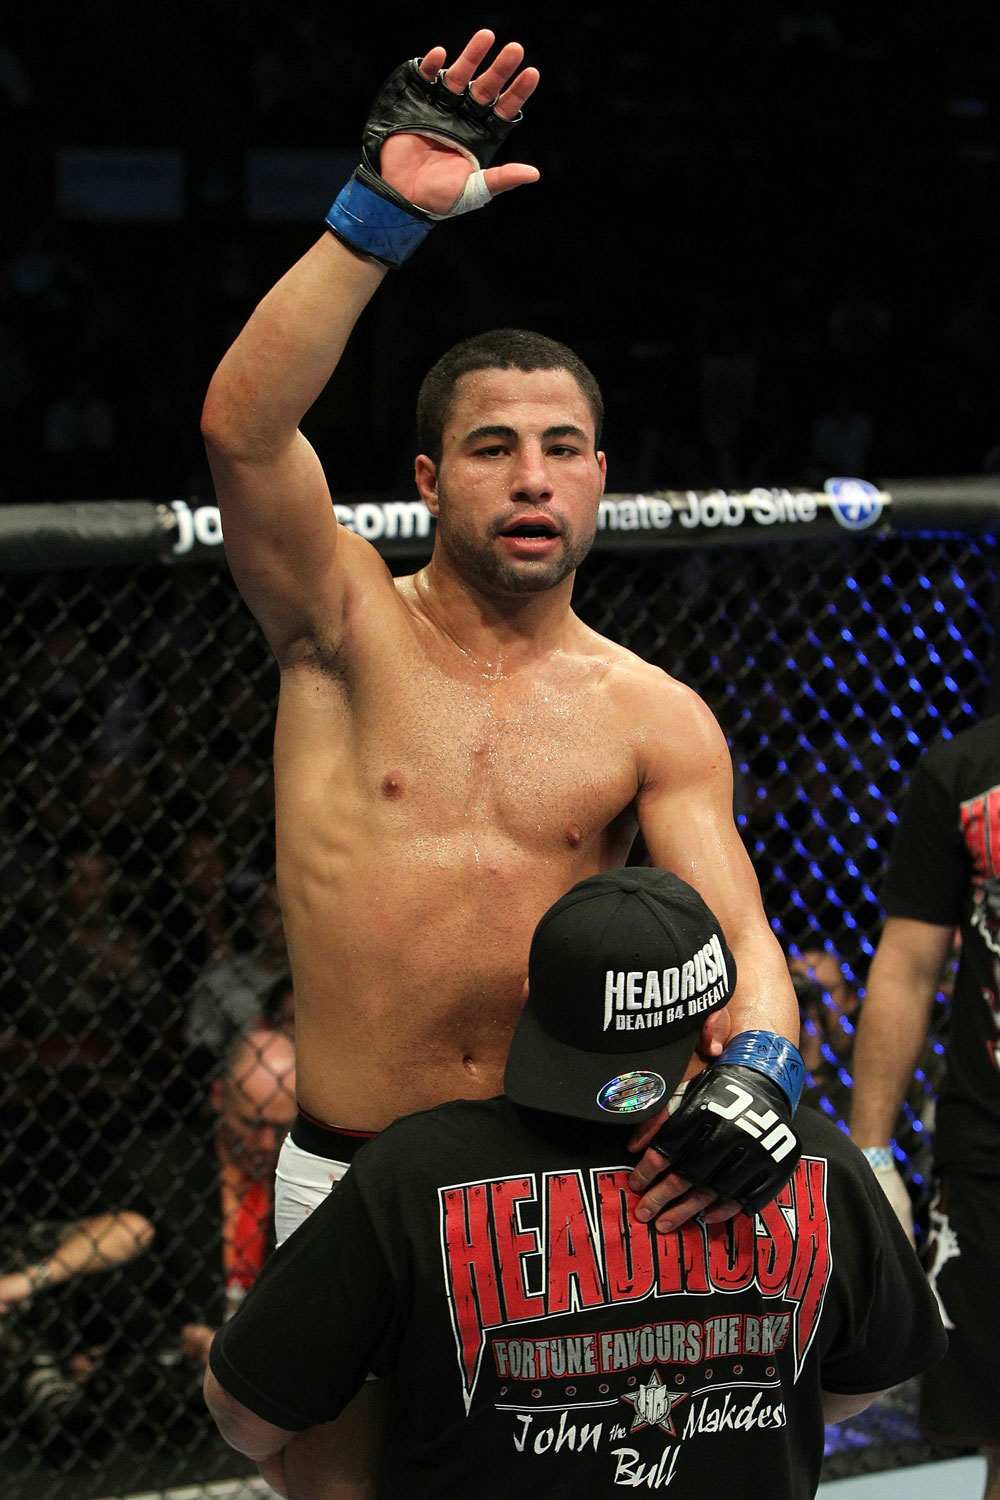 UFC 124: John Makdessi celebrates his win over